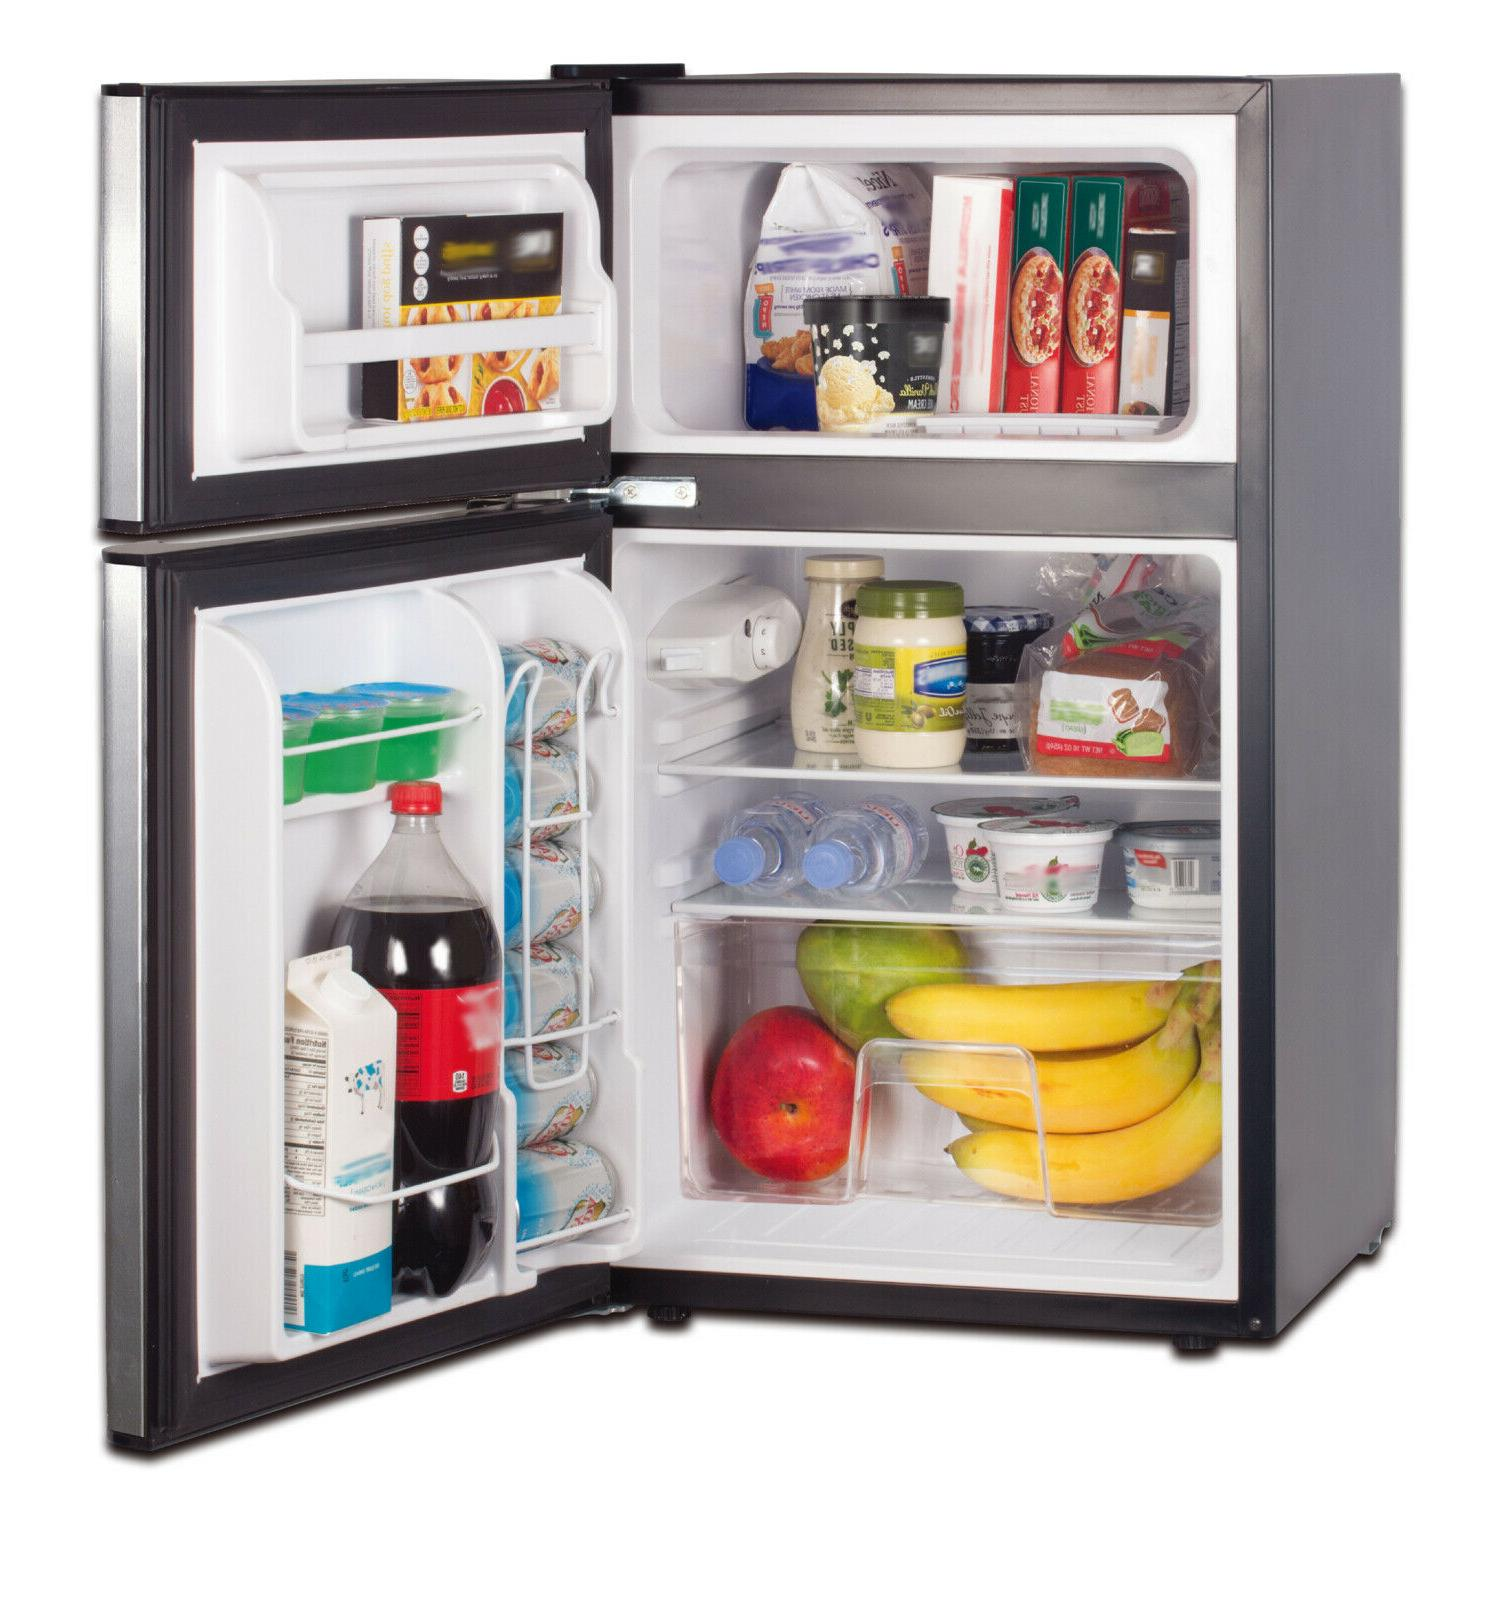 RCA 3.2 Two Mini Fridge with Freezer RFR834, Steel